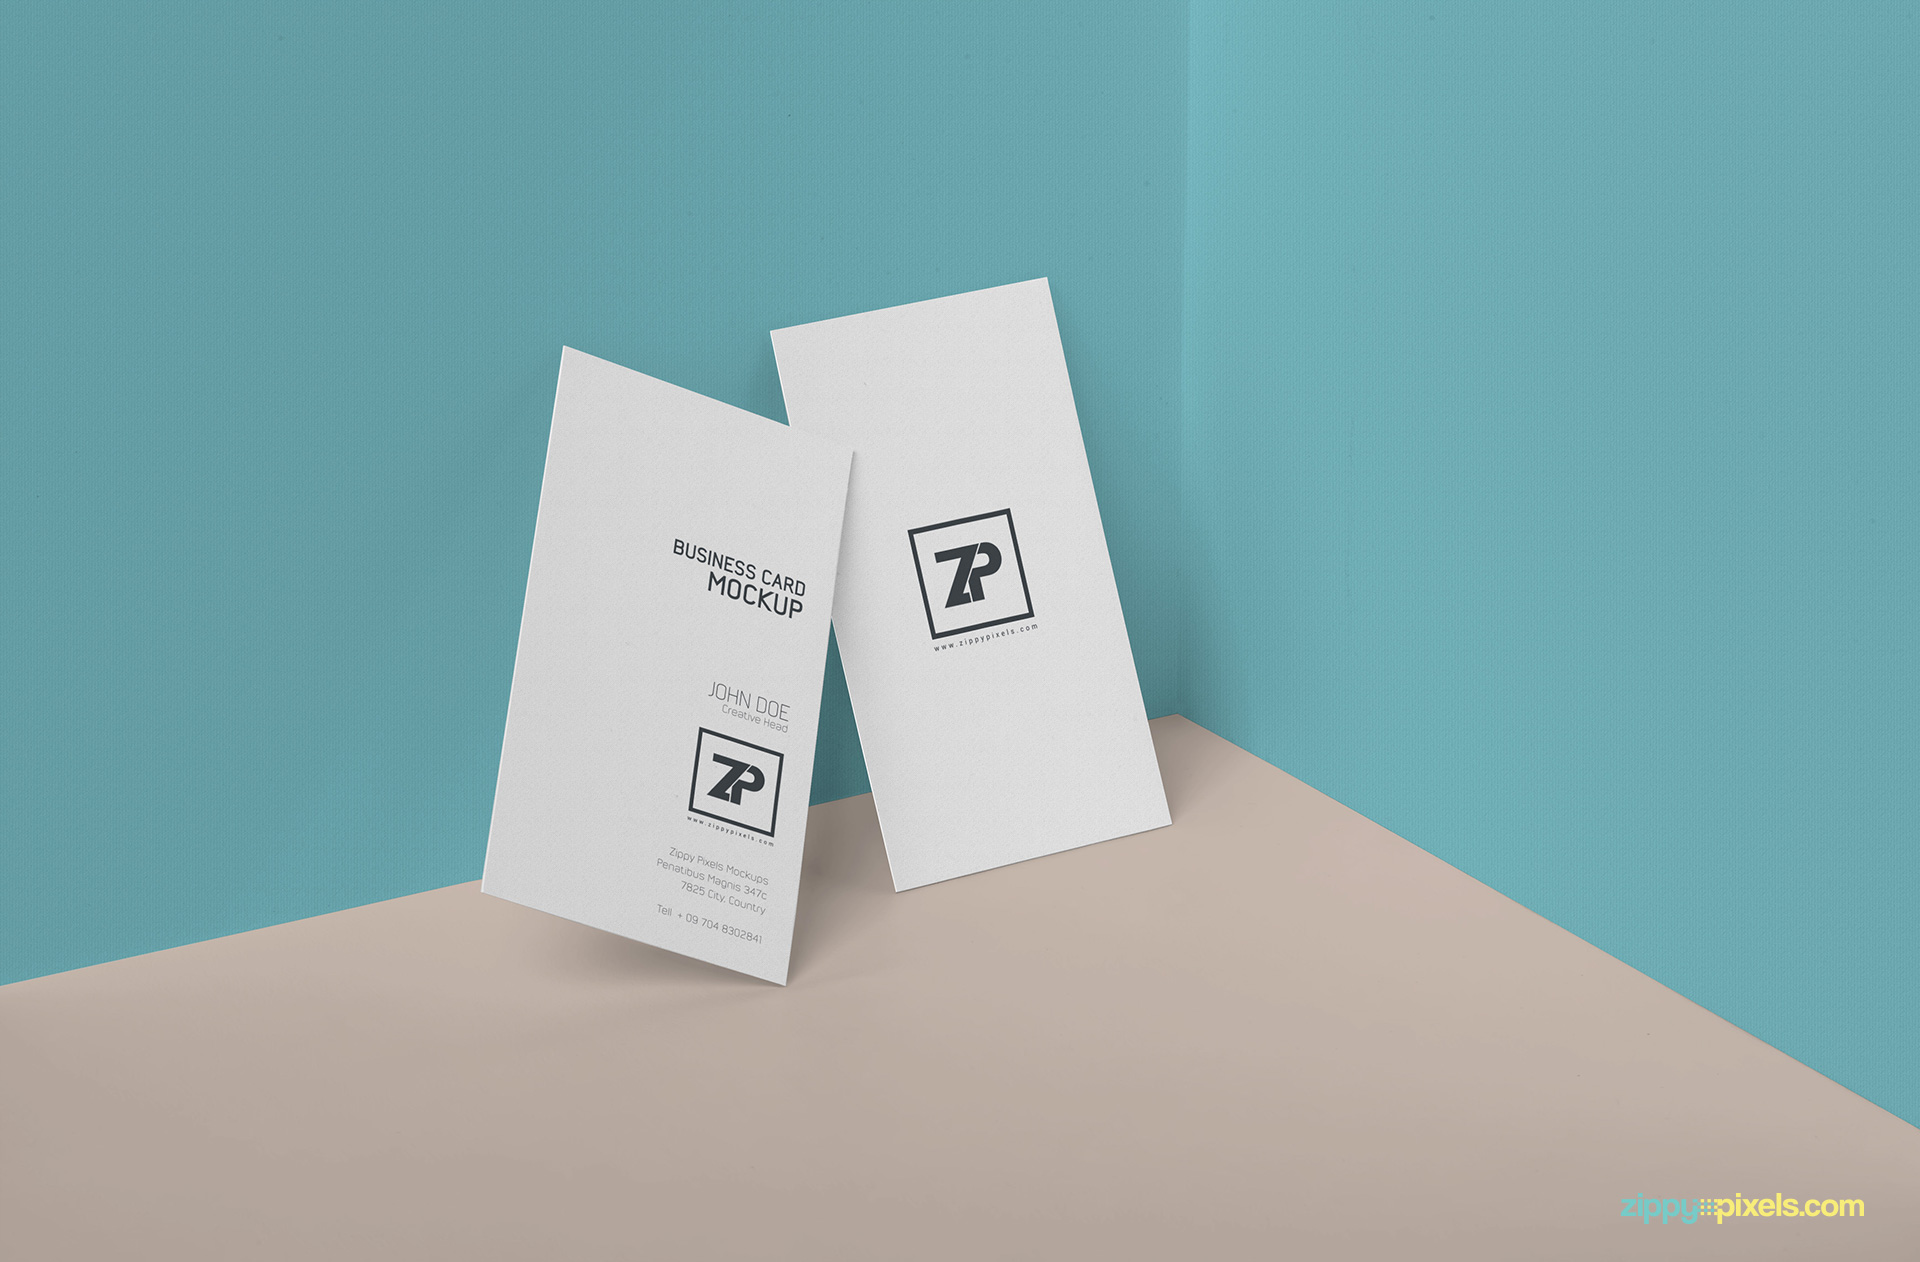 Free business card mockup psd zippypixels 01 free business card mockup psd 824x542 reheart Gallery